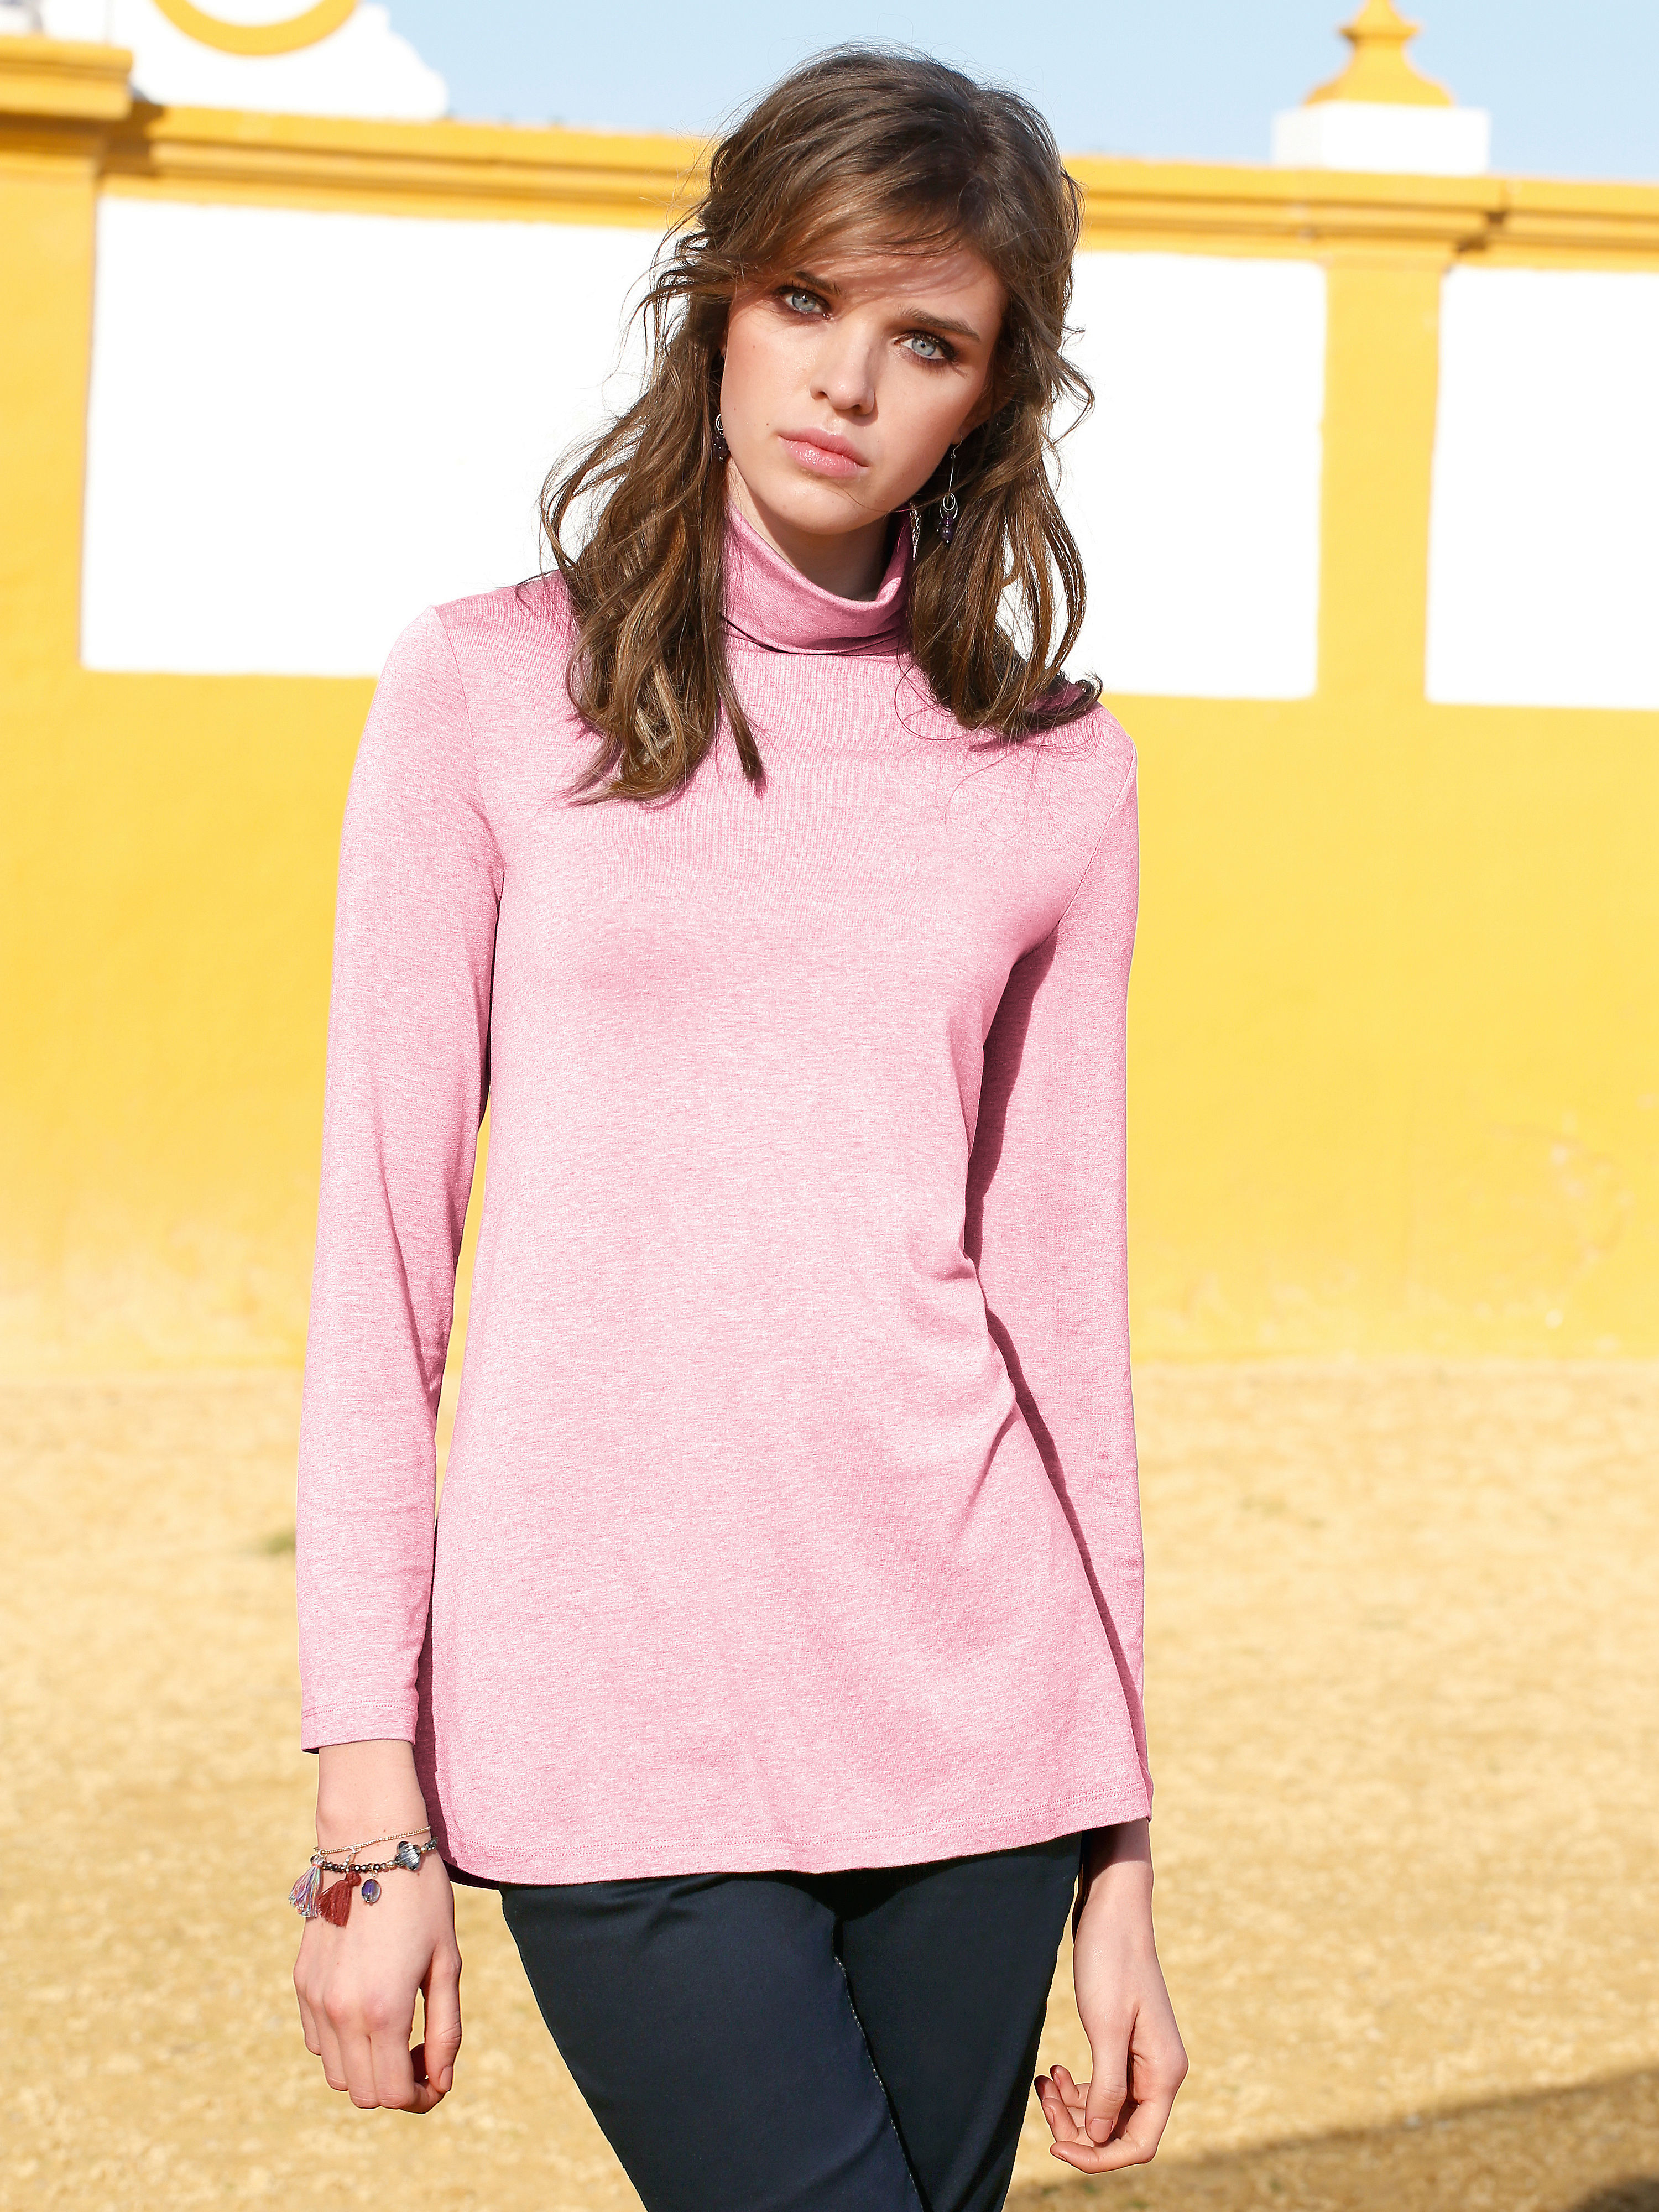 Roll neck top from Peter Hahn bright pink